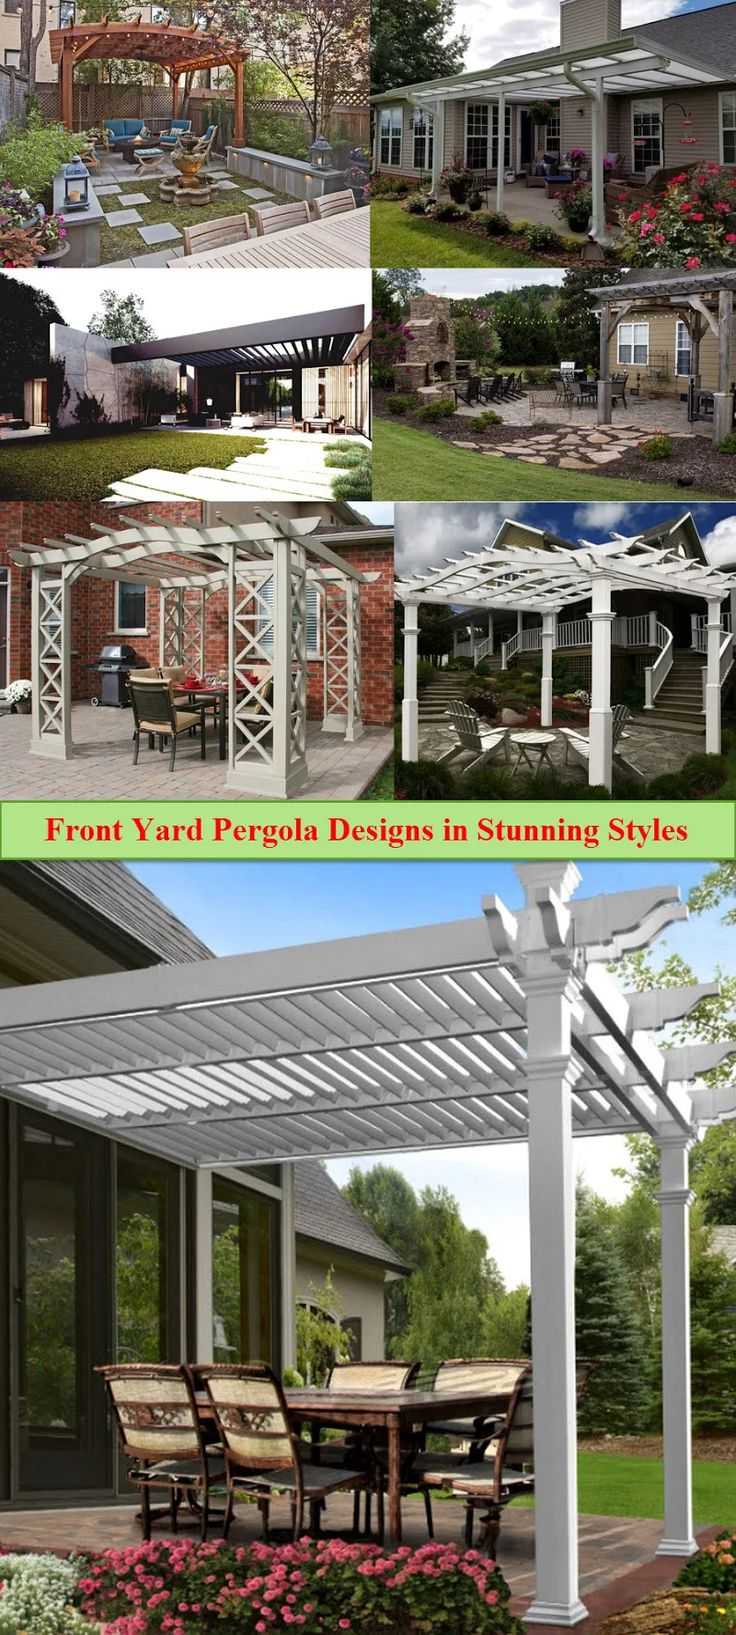 Pergola Over Garage an Excellent Option Pergolas Garage pergola